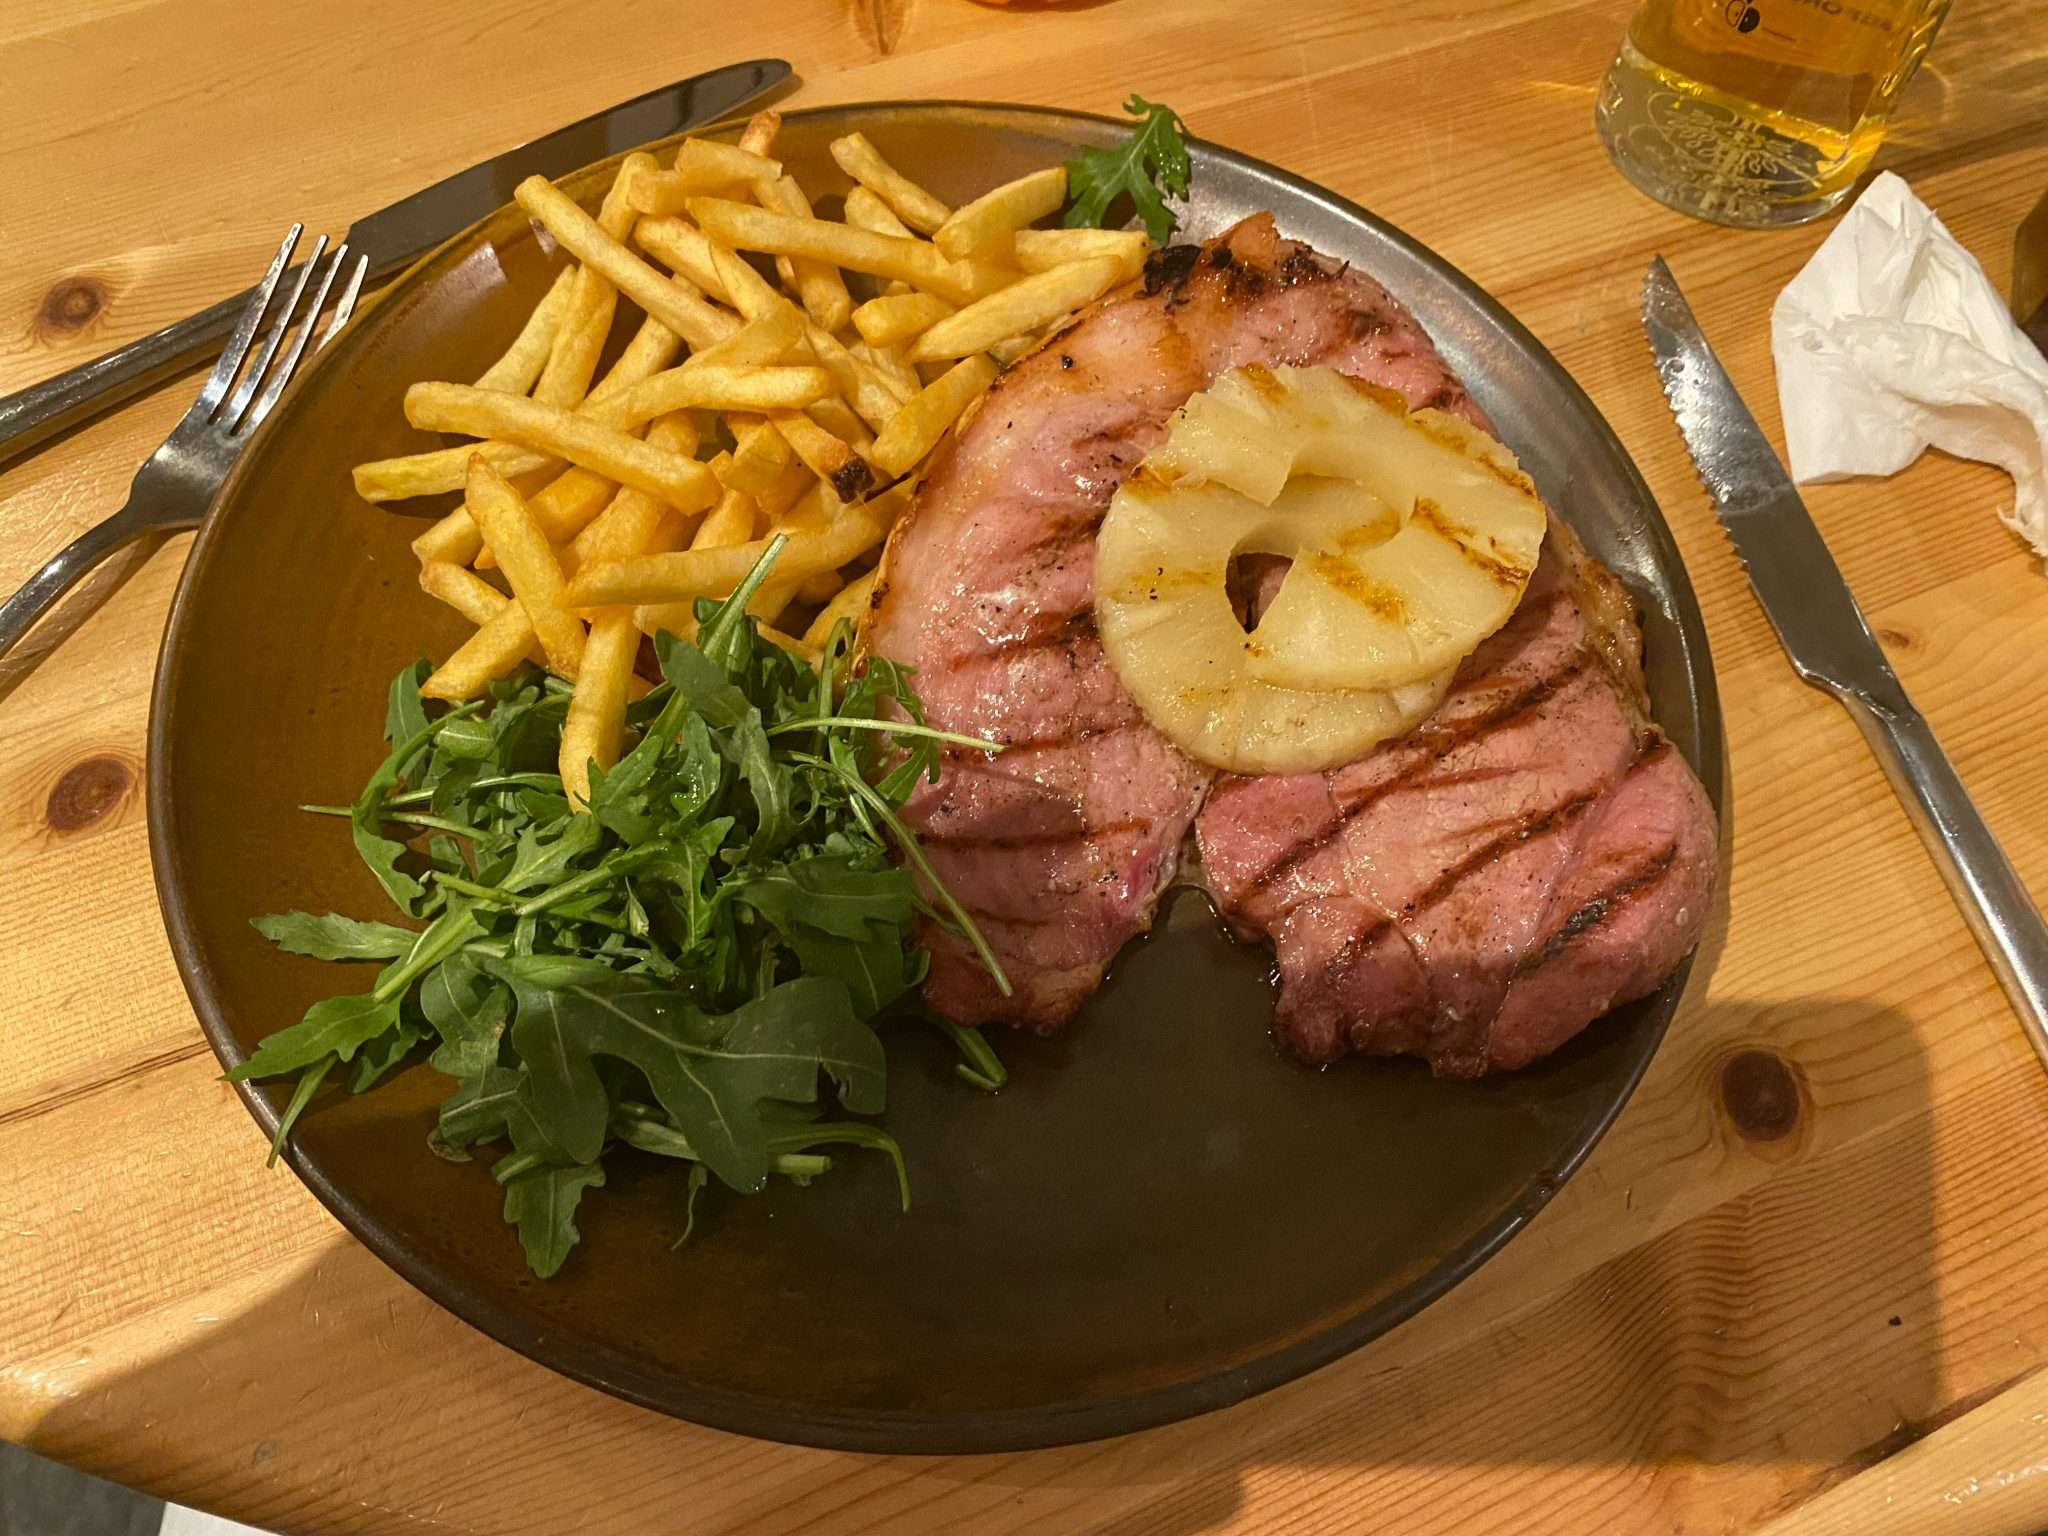 A 13oz gammon steak and large pile of fries and salad, with two rings of pineapple